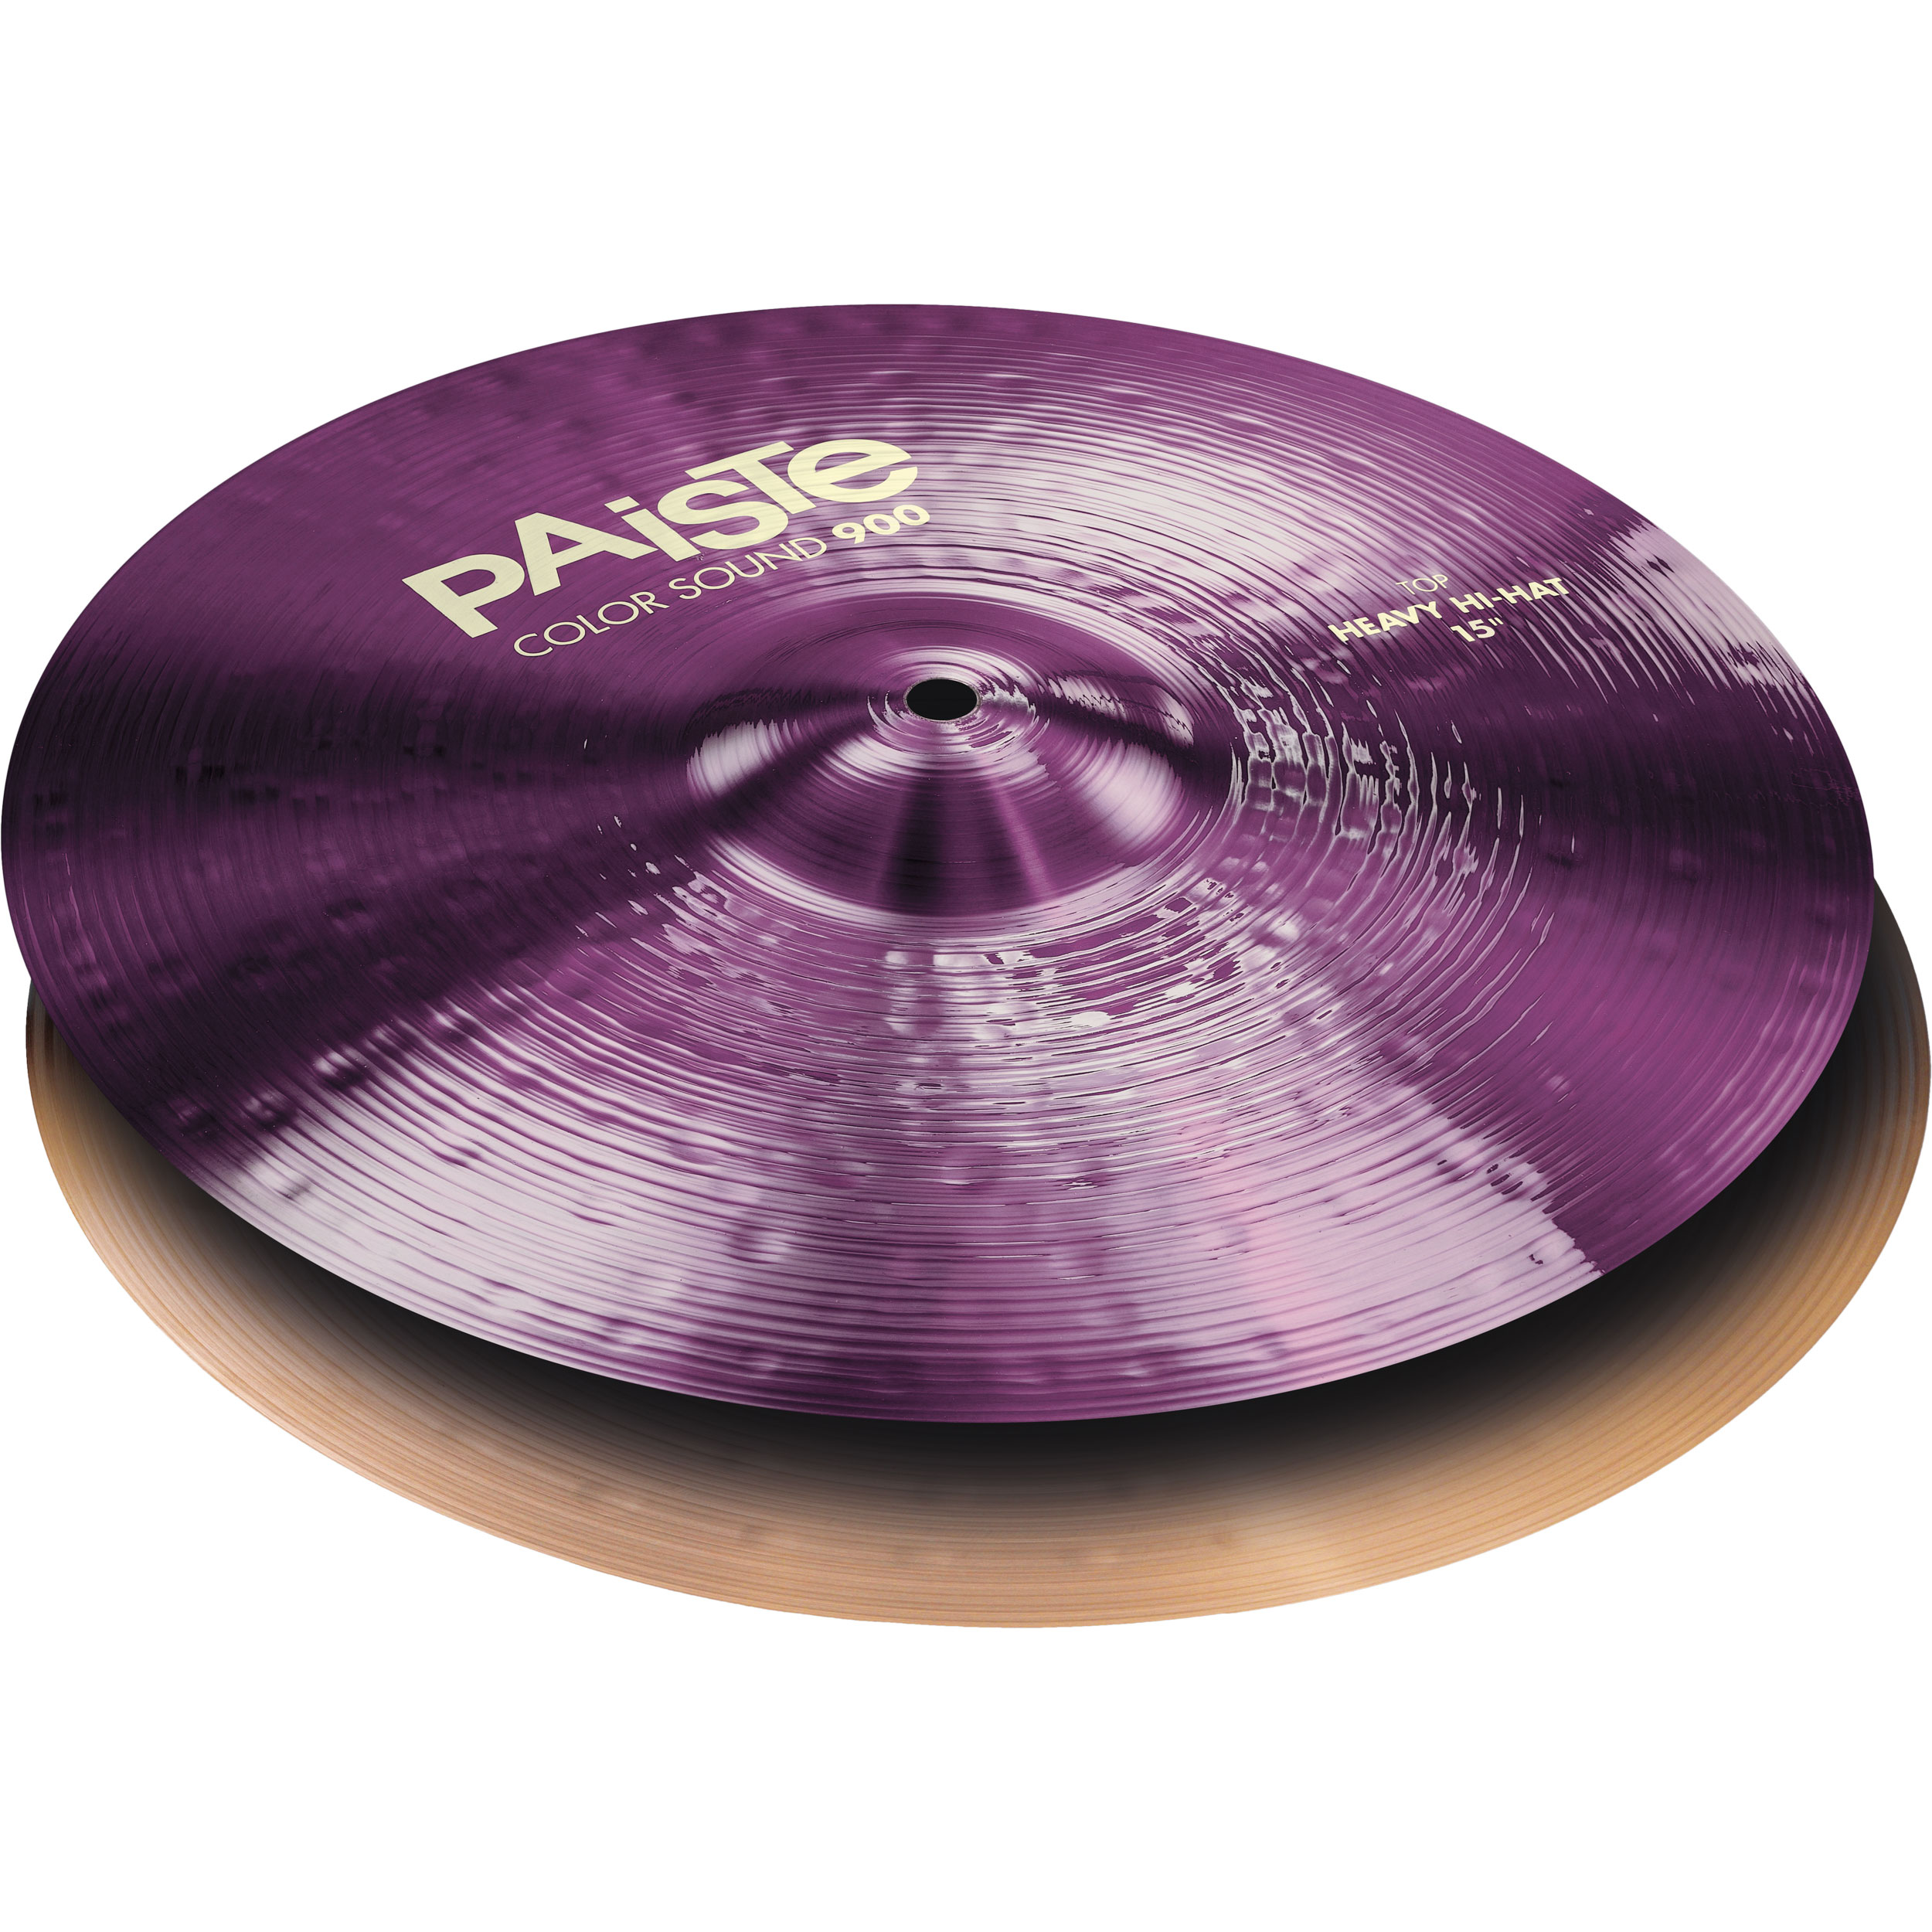 "Paiste 15"" Color Sound 900 Purple Heavy Hi Hat Cymbals"